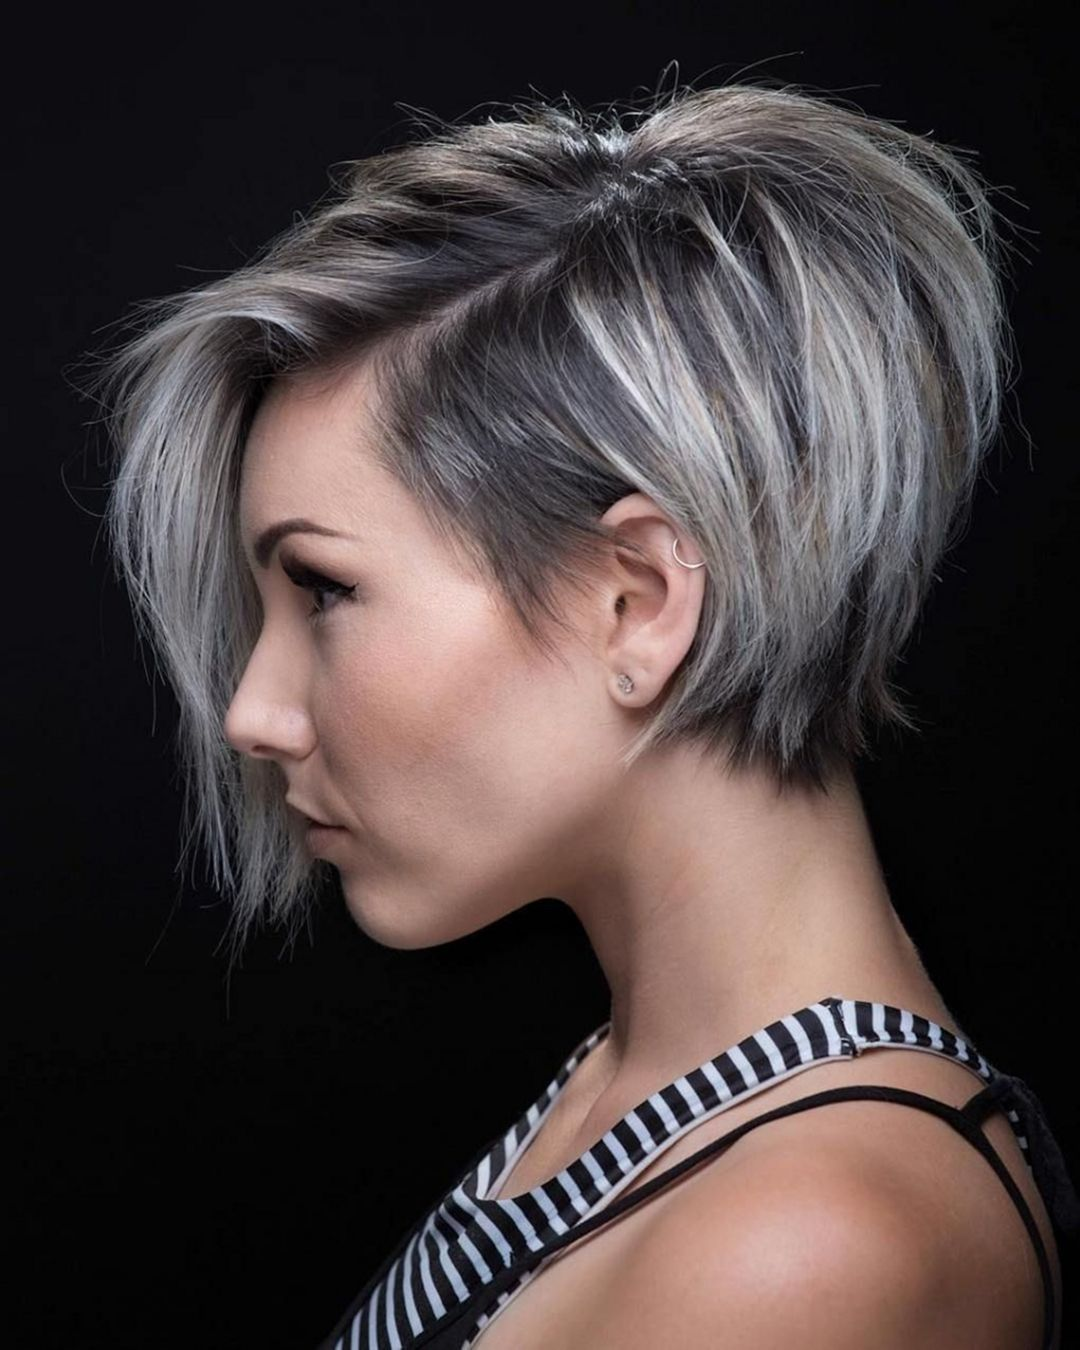 39 Cute Pixie Haircut Ideas For Women Looks More Pretty